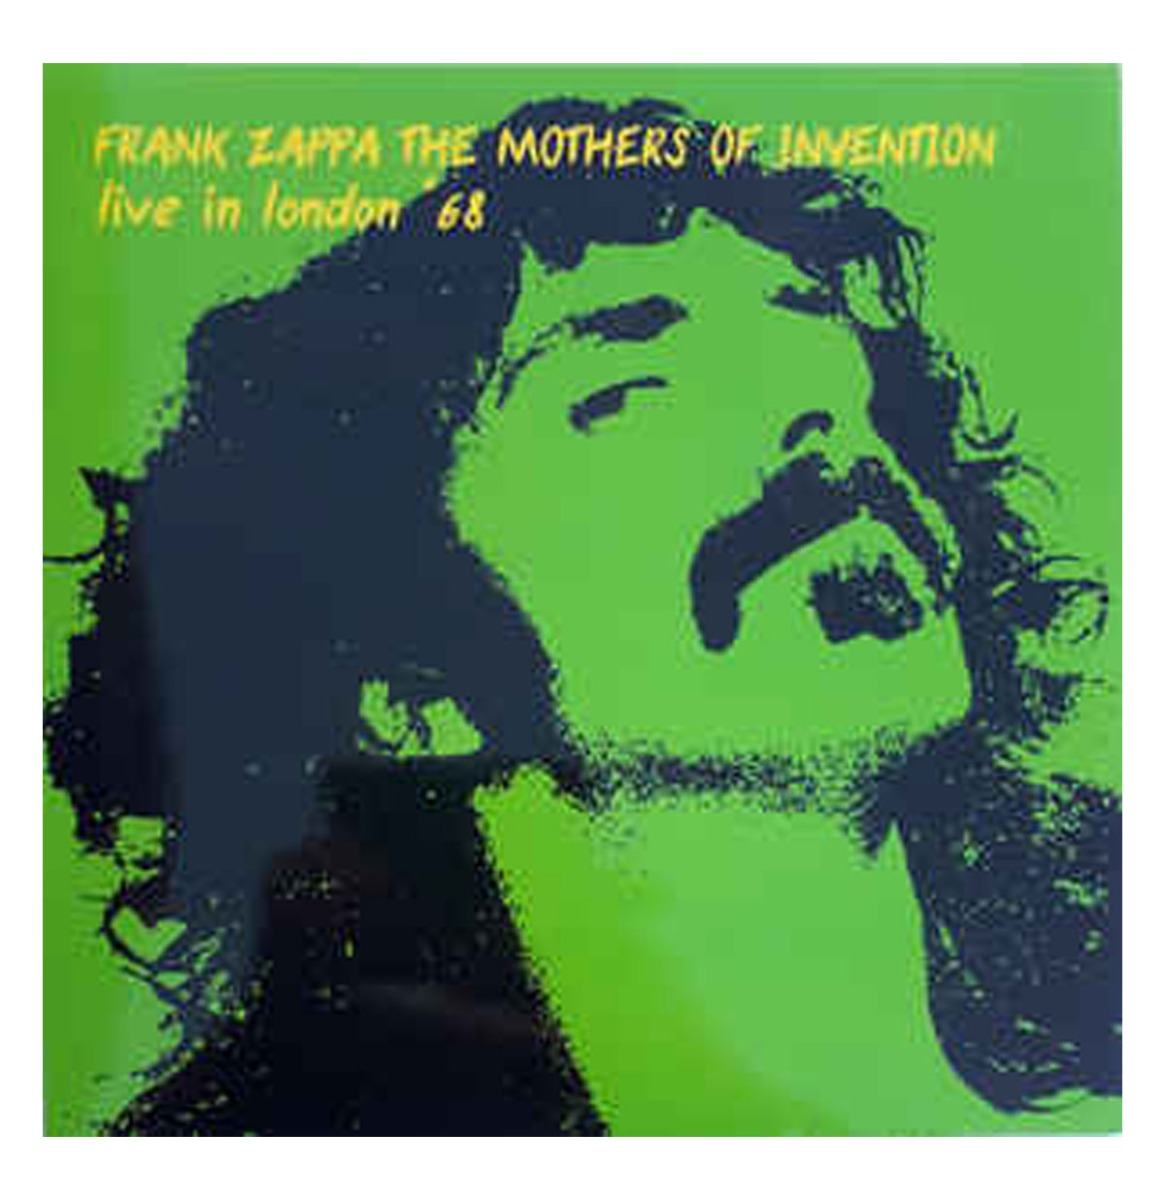 Frank Zappa & The Mothers Of Invention - Live In London '68 Vinyl